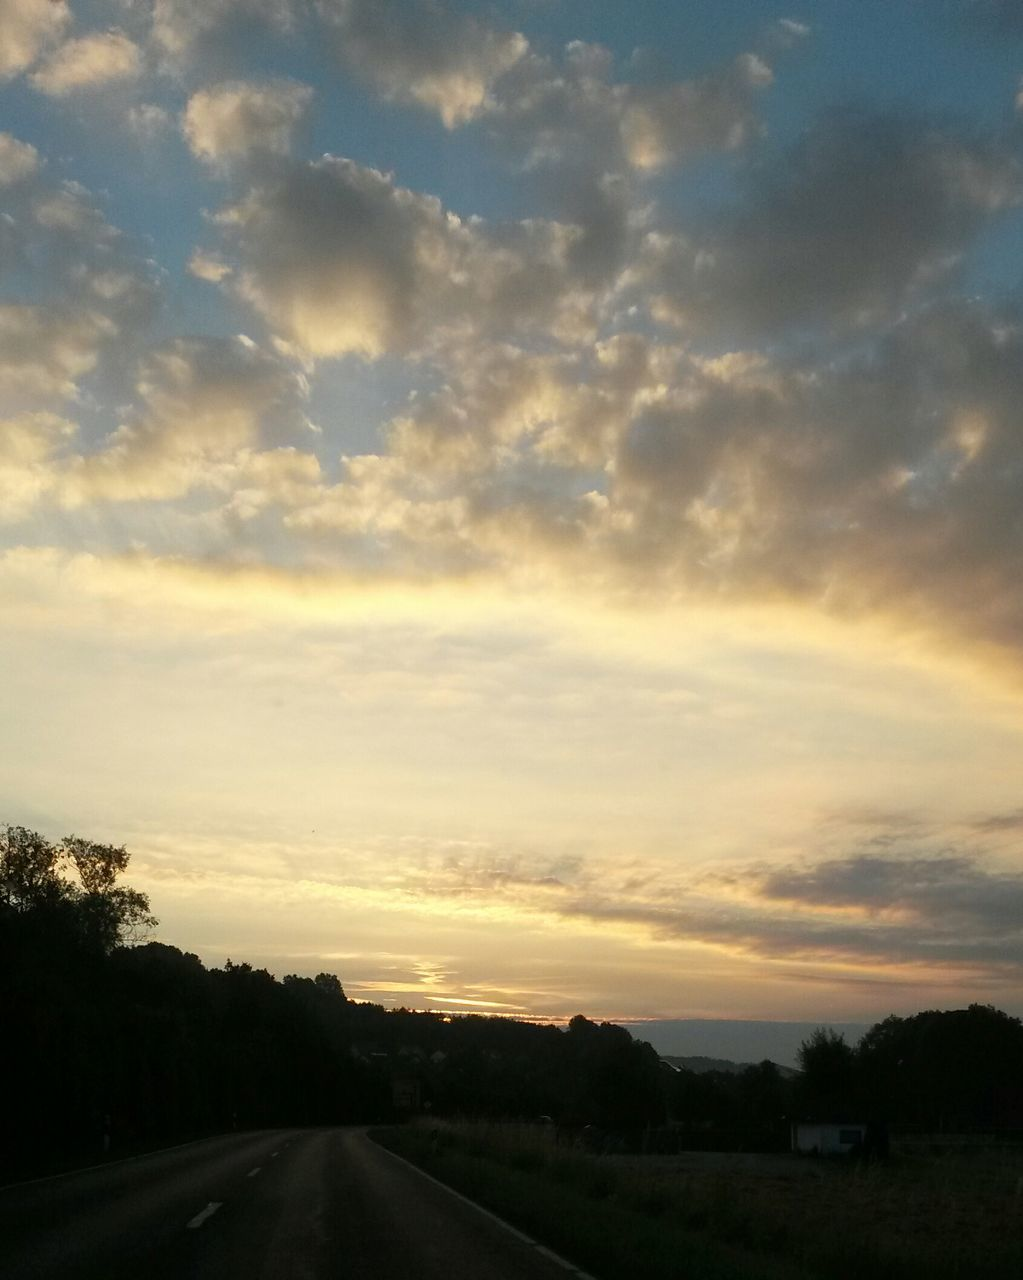 sunset, sky, cloud - sky, road, scenics, dramatic sky, no people, transportation, nature, tranquility, beauty in nature, tranquil scene, outdoors, landscape, the way forward, tree, day